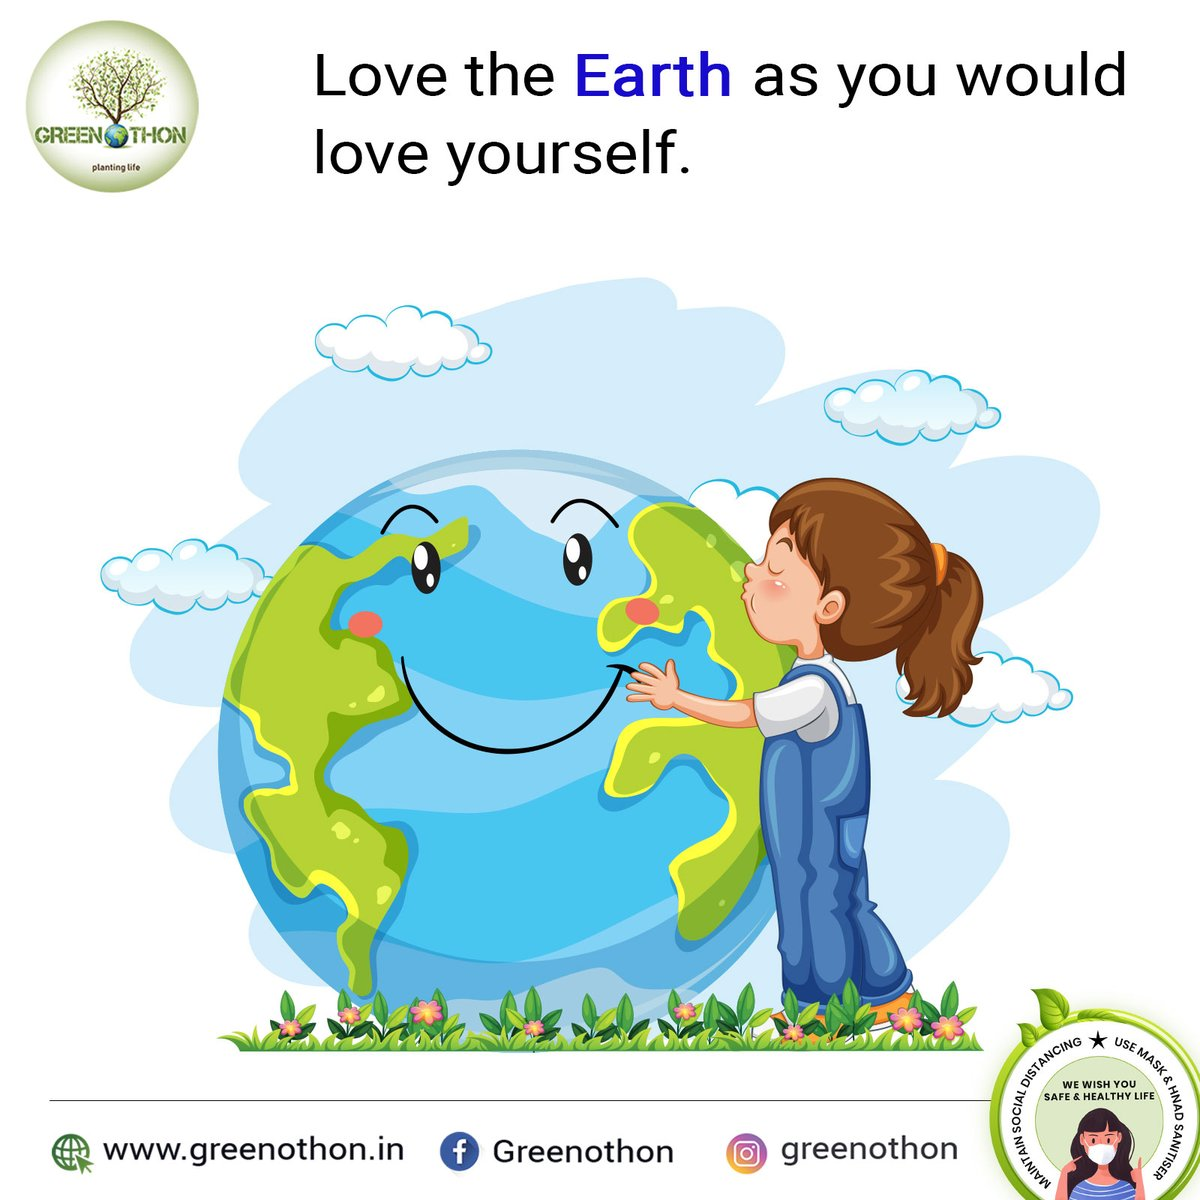 Love the Earth as you would love yourself! #Earth #greenothon #plantalife #pal #loveearth #sky #GoGreen #loveearth #saveearth #pollutionfree #climatechange #plantmoretrees #savetrees #naturelovers #nature  #wildlife #beauty #sun #moon #COVIDー19 #fightagainstcorona #NaturalBeauty https://t.co/tQUuJCvVpe